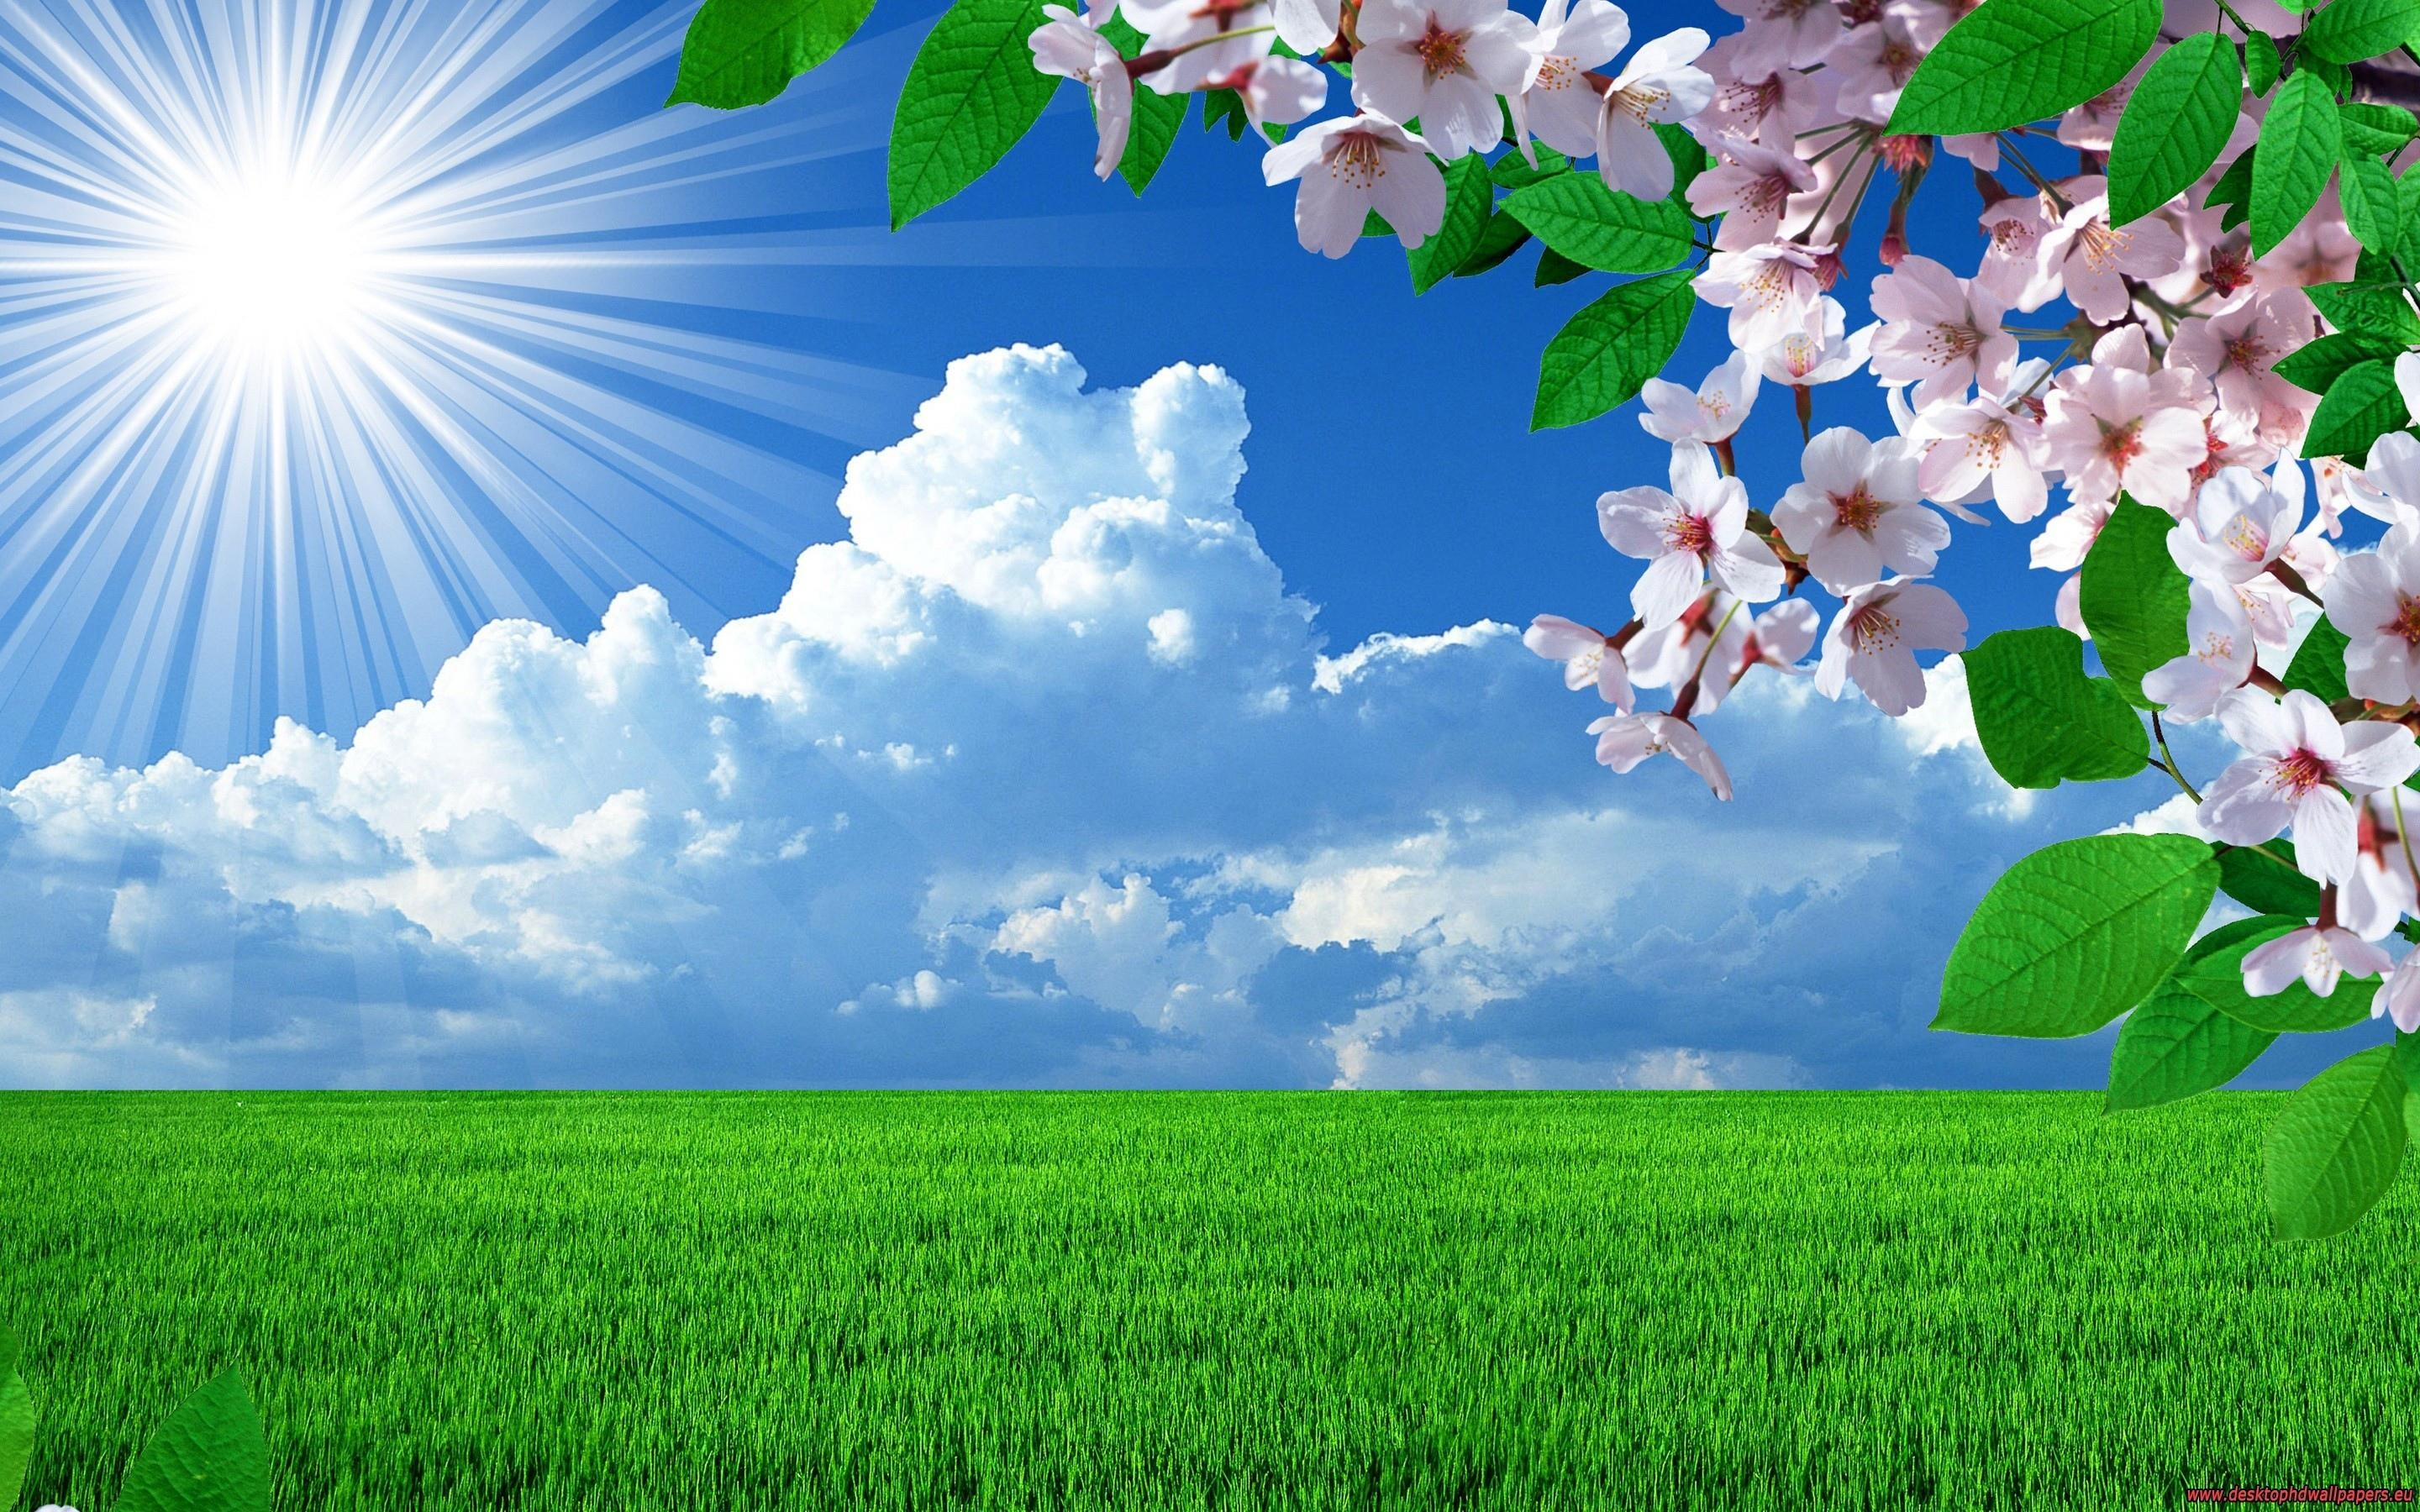 Nature clipart hd quality Natural Cliparts clipart Zone Hd